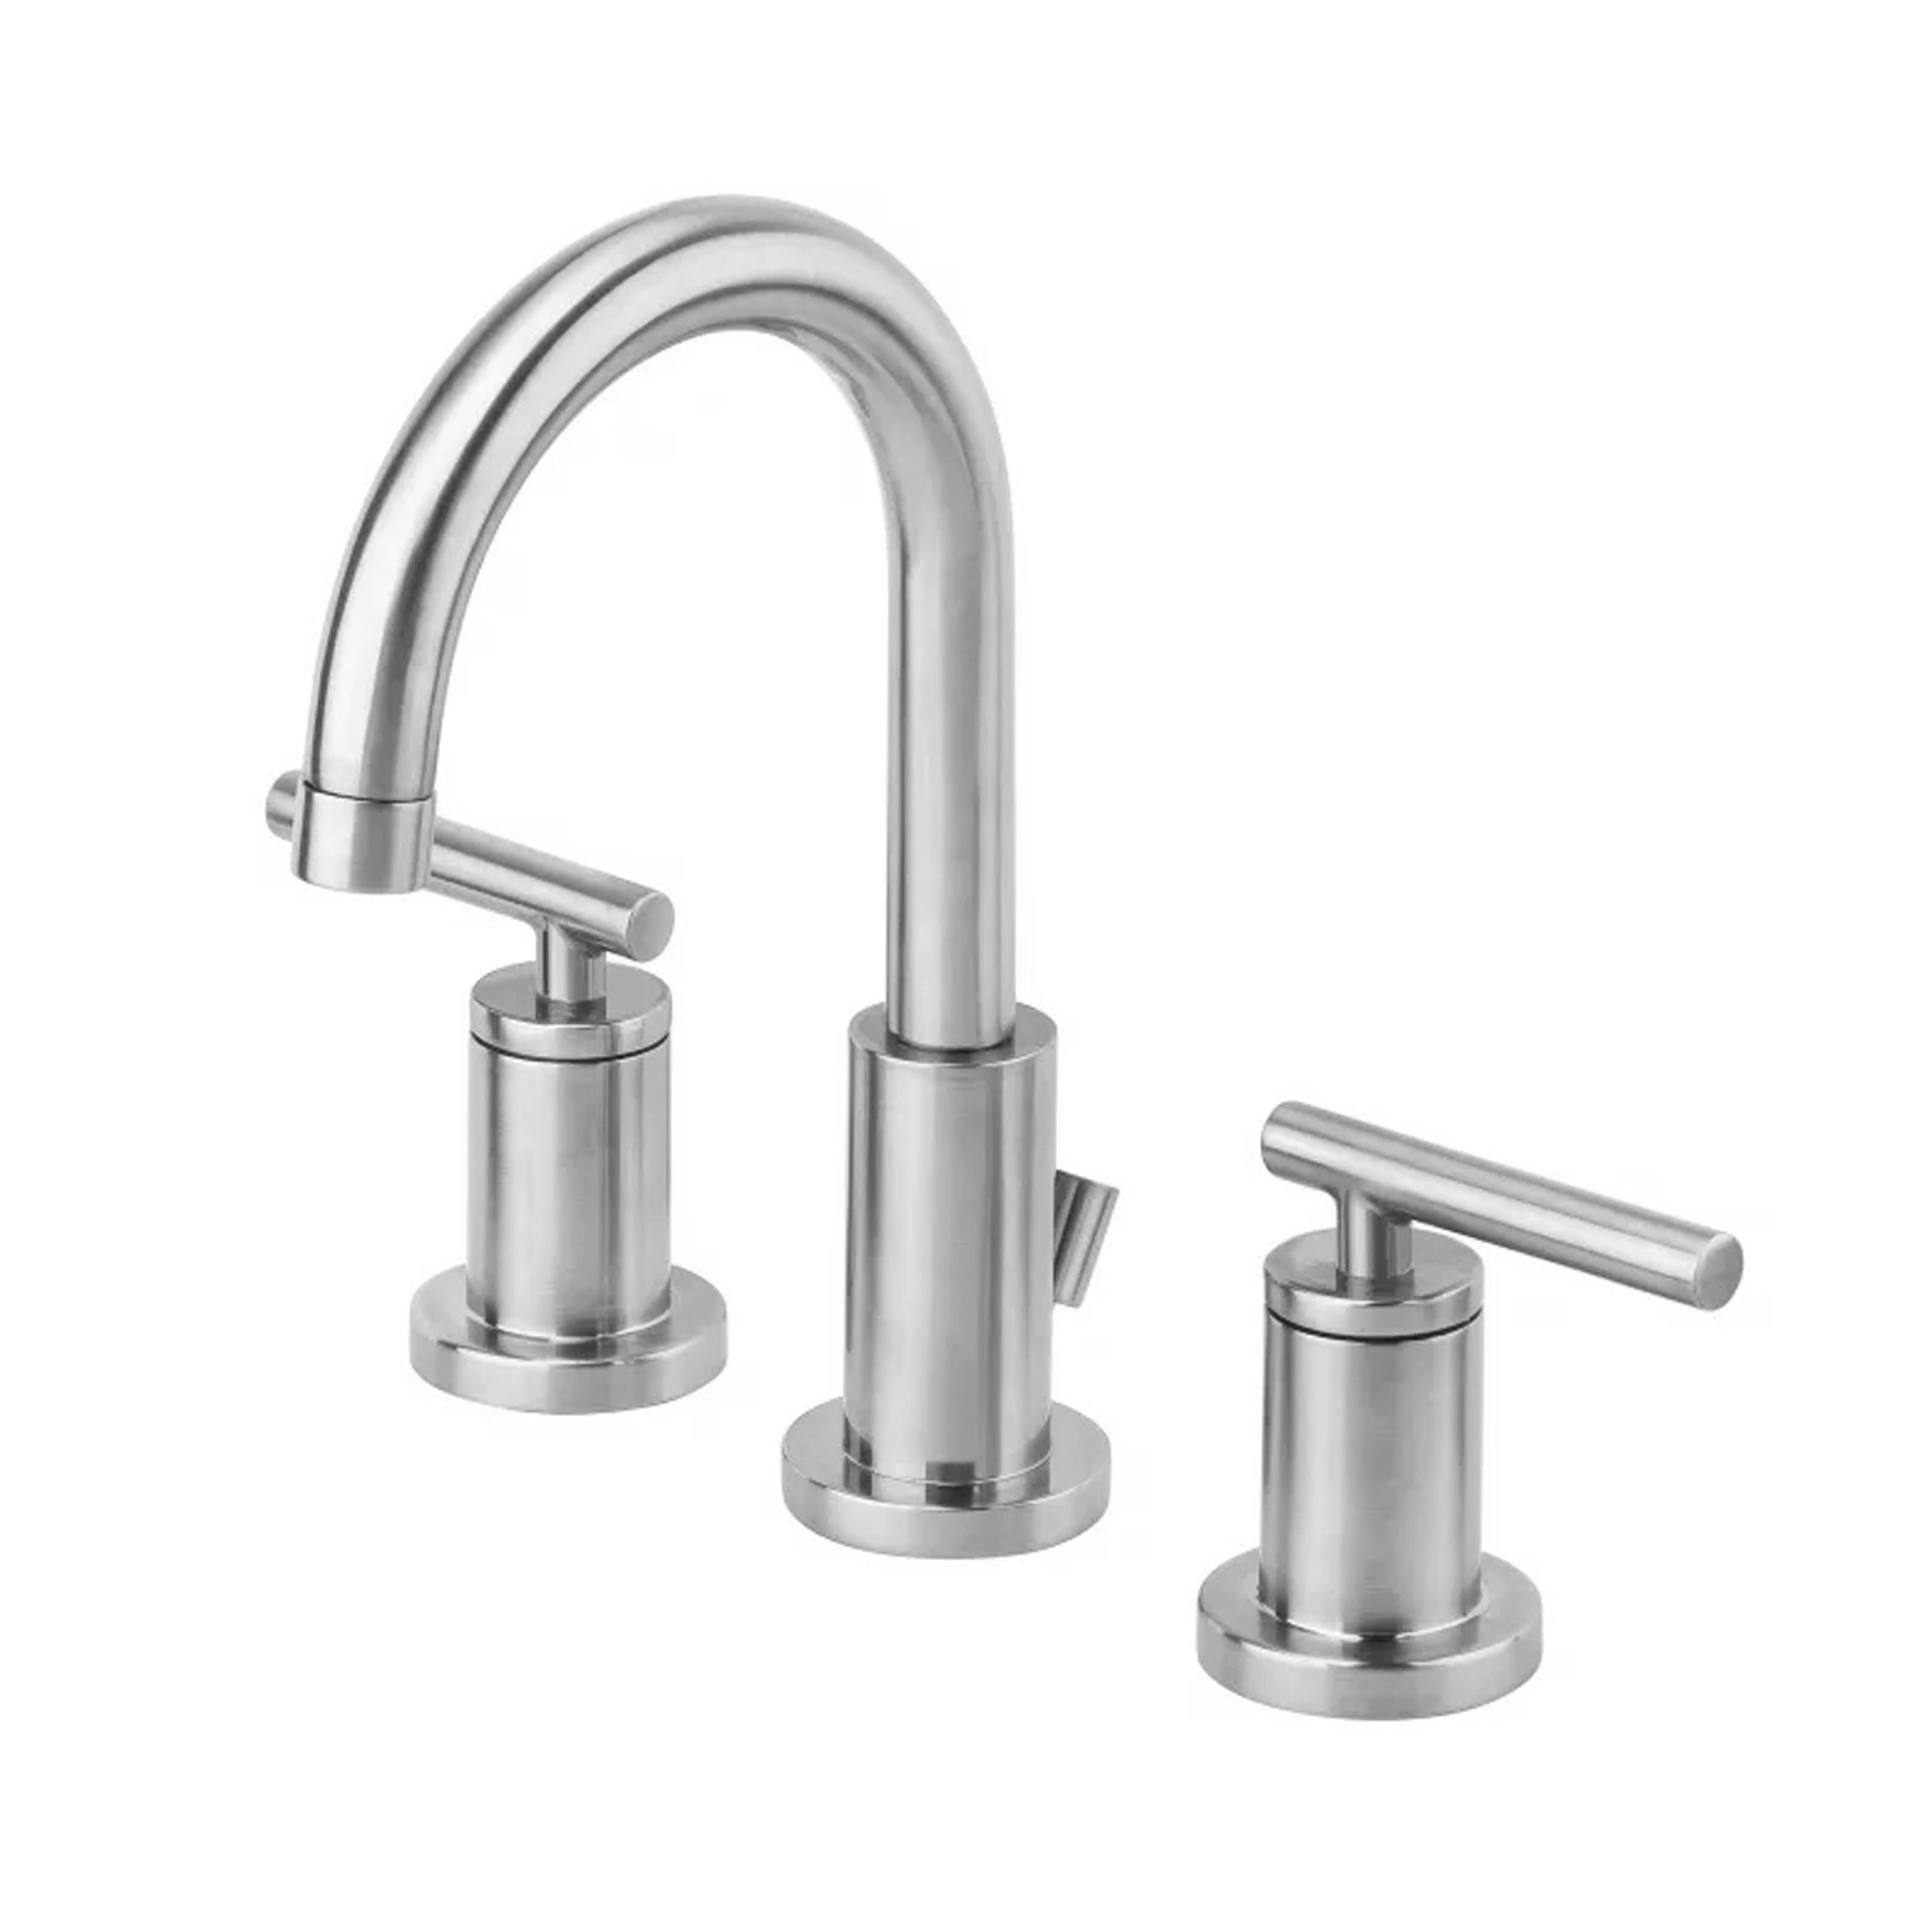 Soleil Widespread Bathroom Faucet Reviews Wayfair